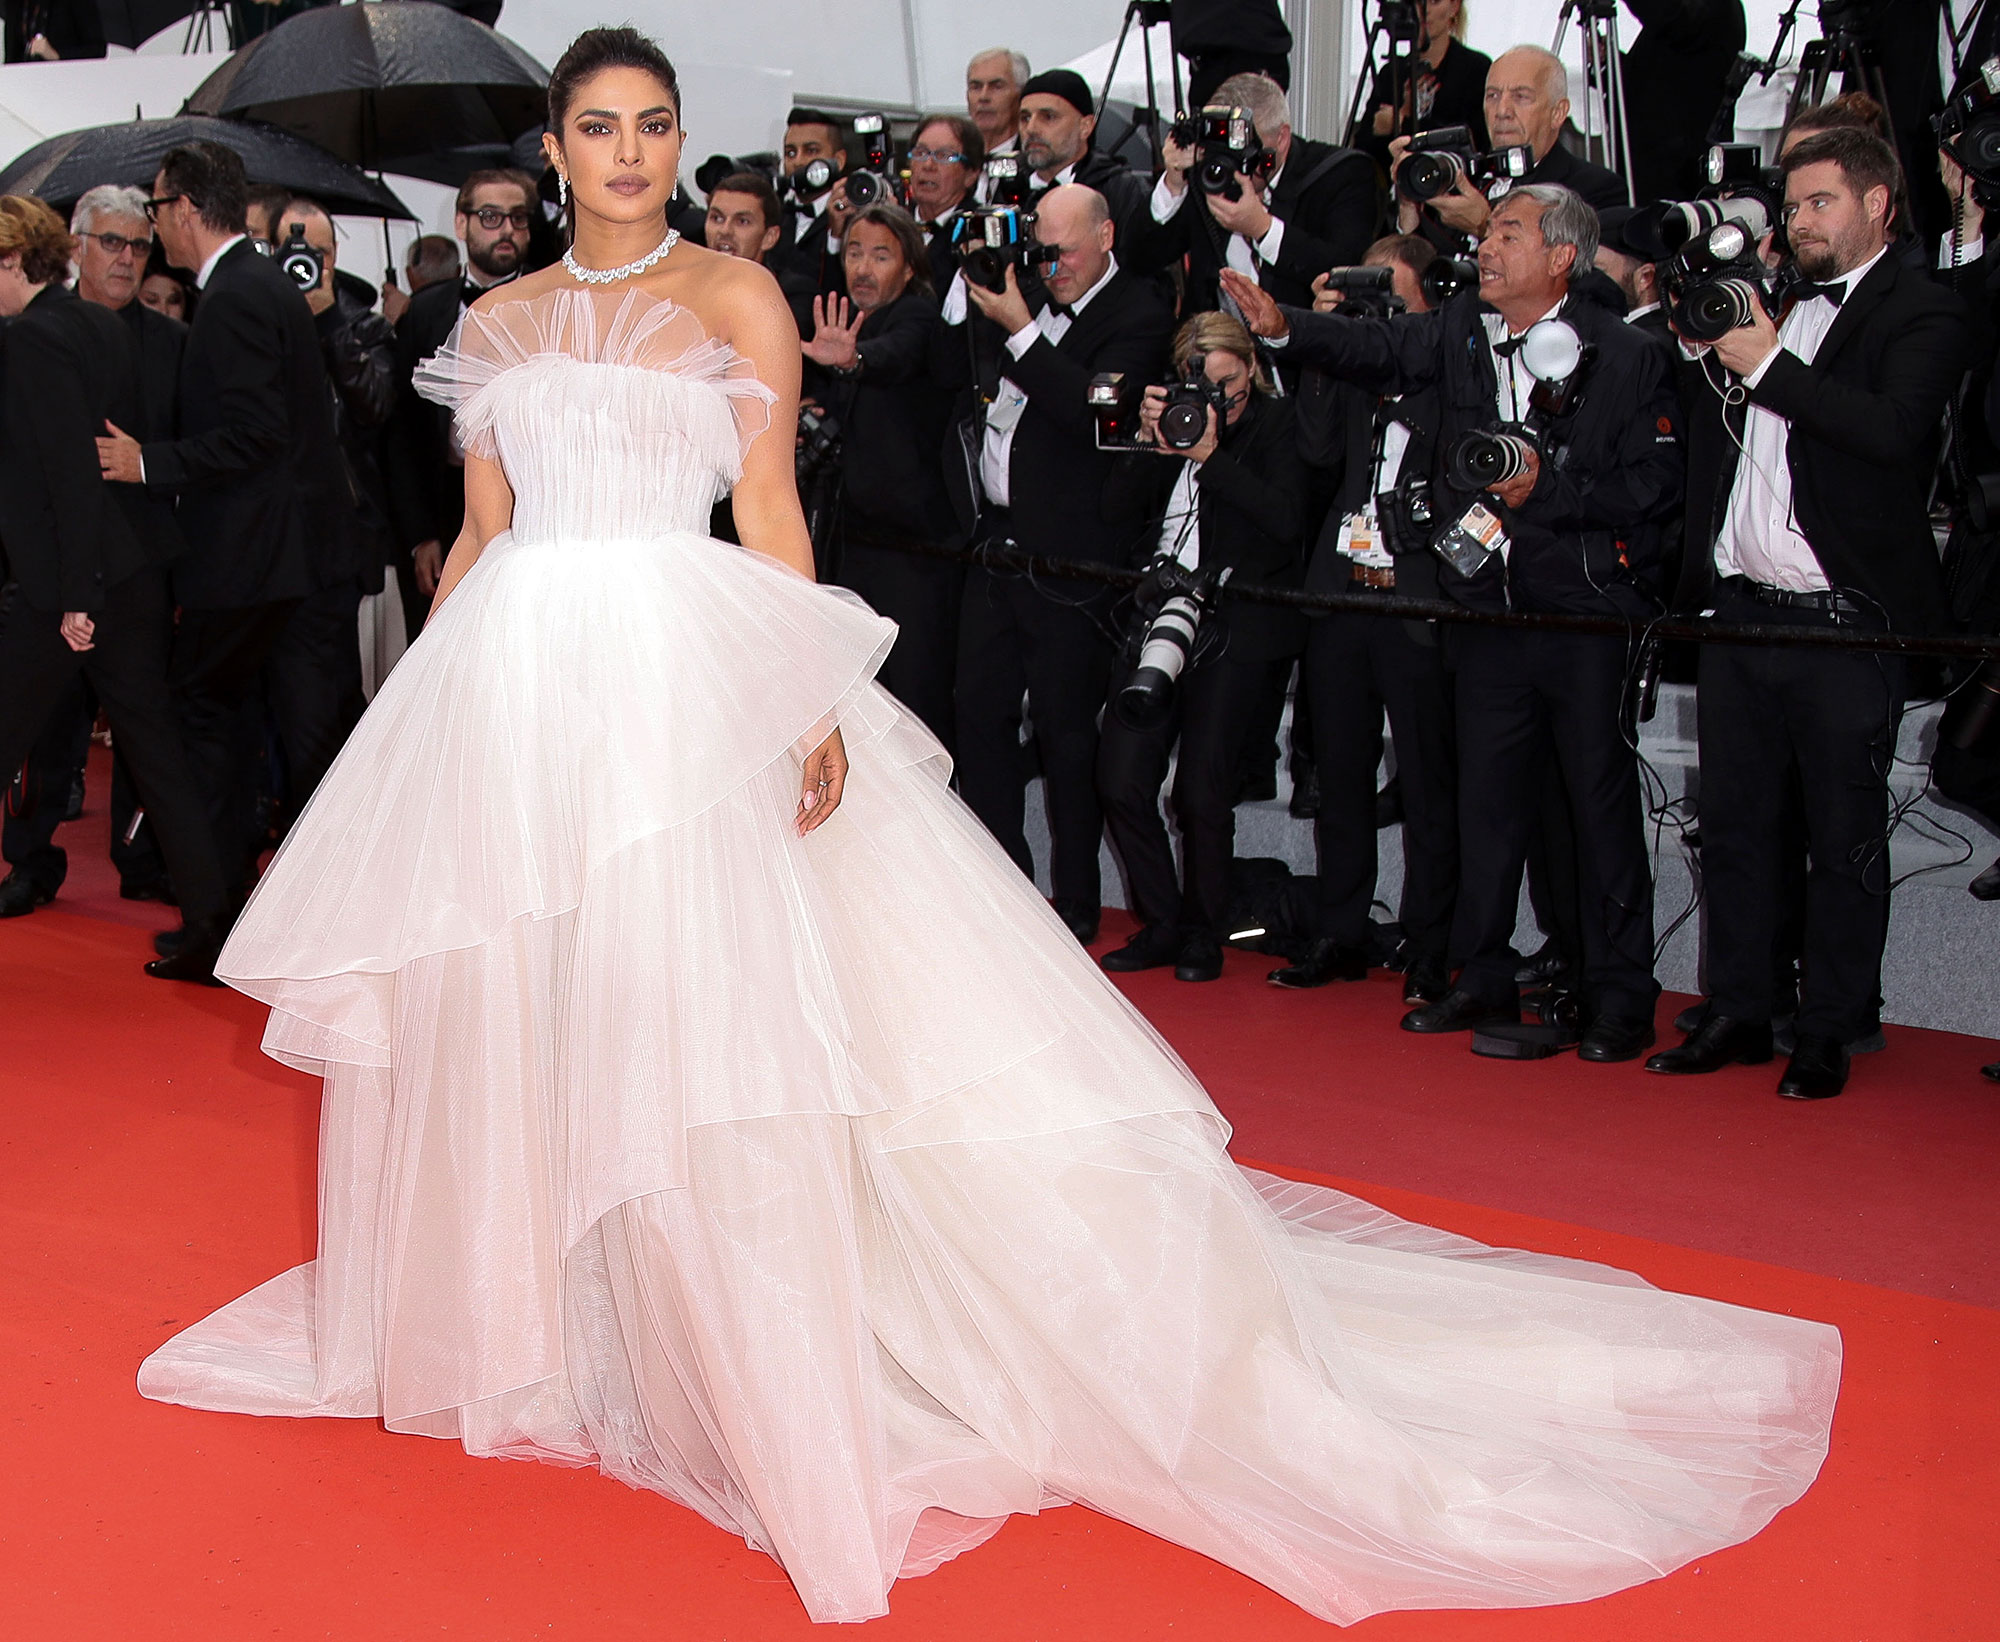 Stepping Out in Style at Cannes Film Festival - After walking the carpet with hubby Nick Jonas, the actress posed in her voluminous Georges Hobeika gown and Chopard bling at the Les Plus Belles Annees D'Une Vie premiere on Saturday, May 18.